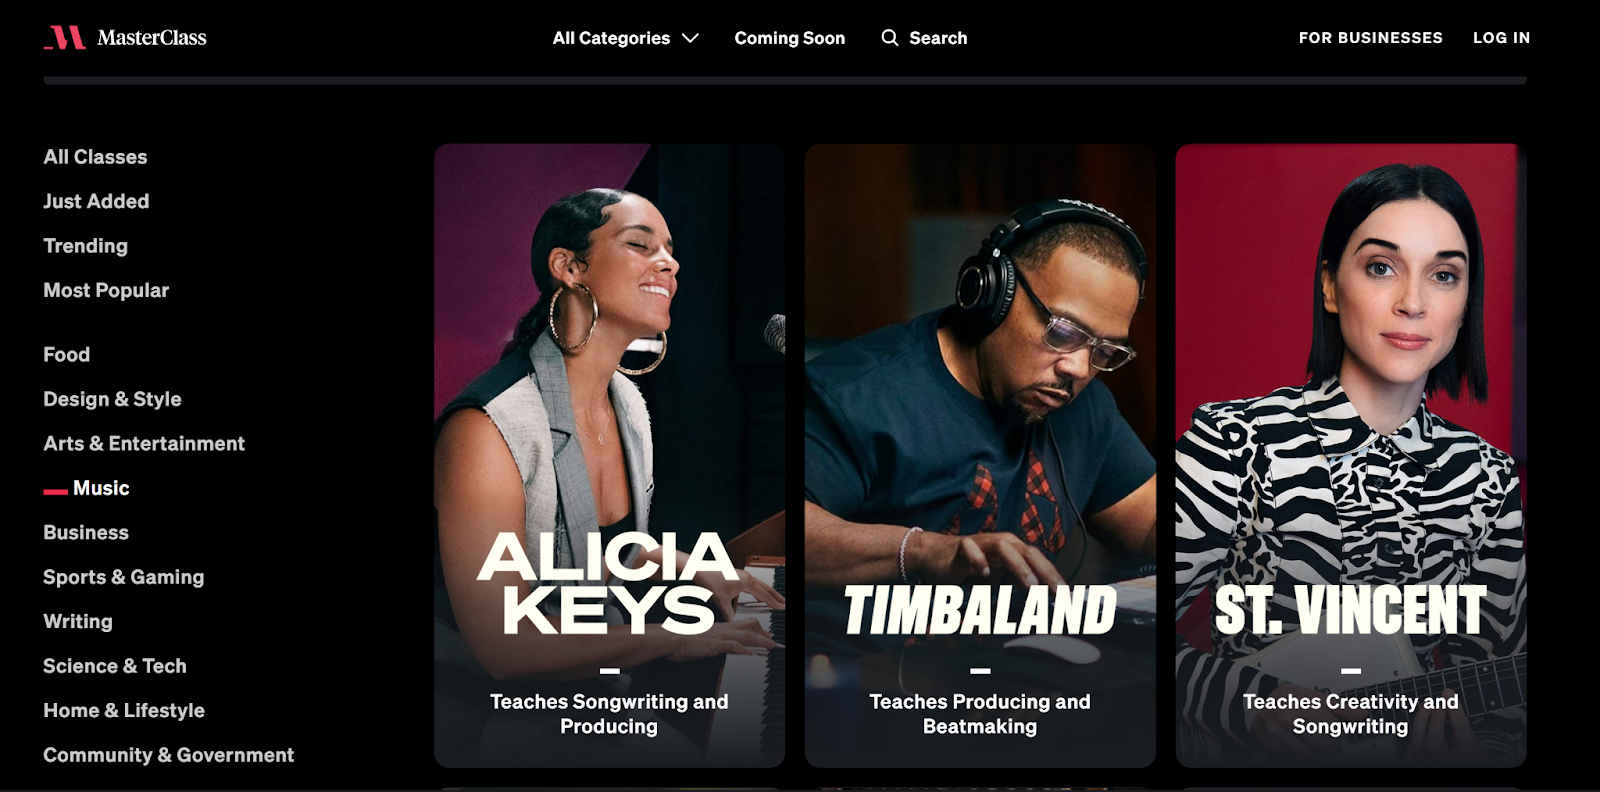 Images of Alicia Keys, Timbaland, and St. Vincent on Masterclass music course page.